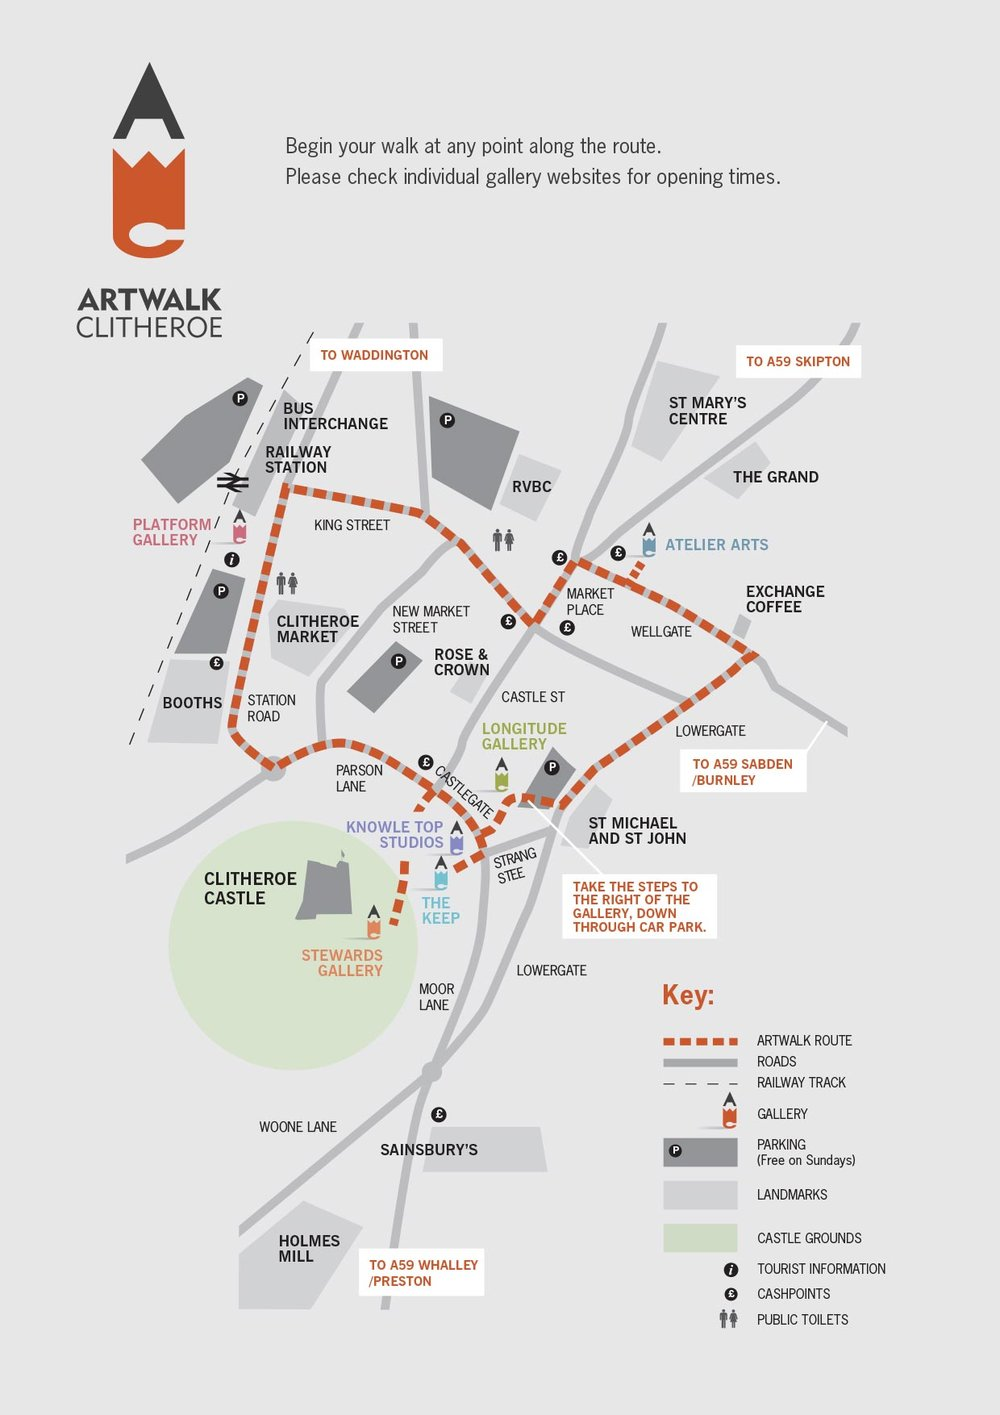 Artwalk-Clitheroe-Map-Download.jpg